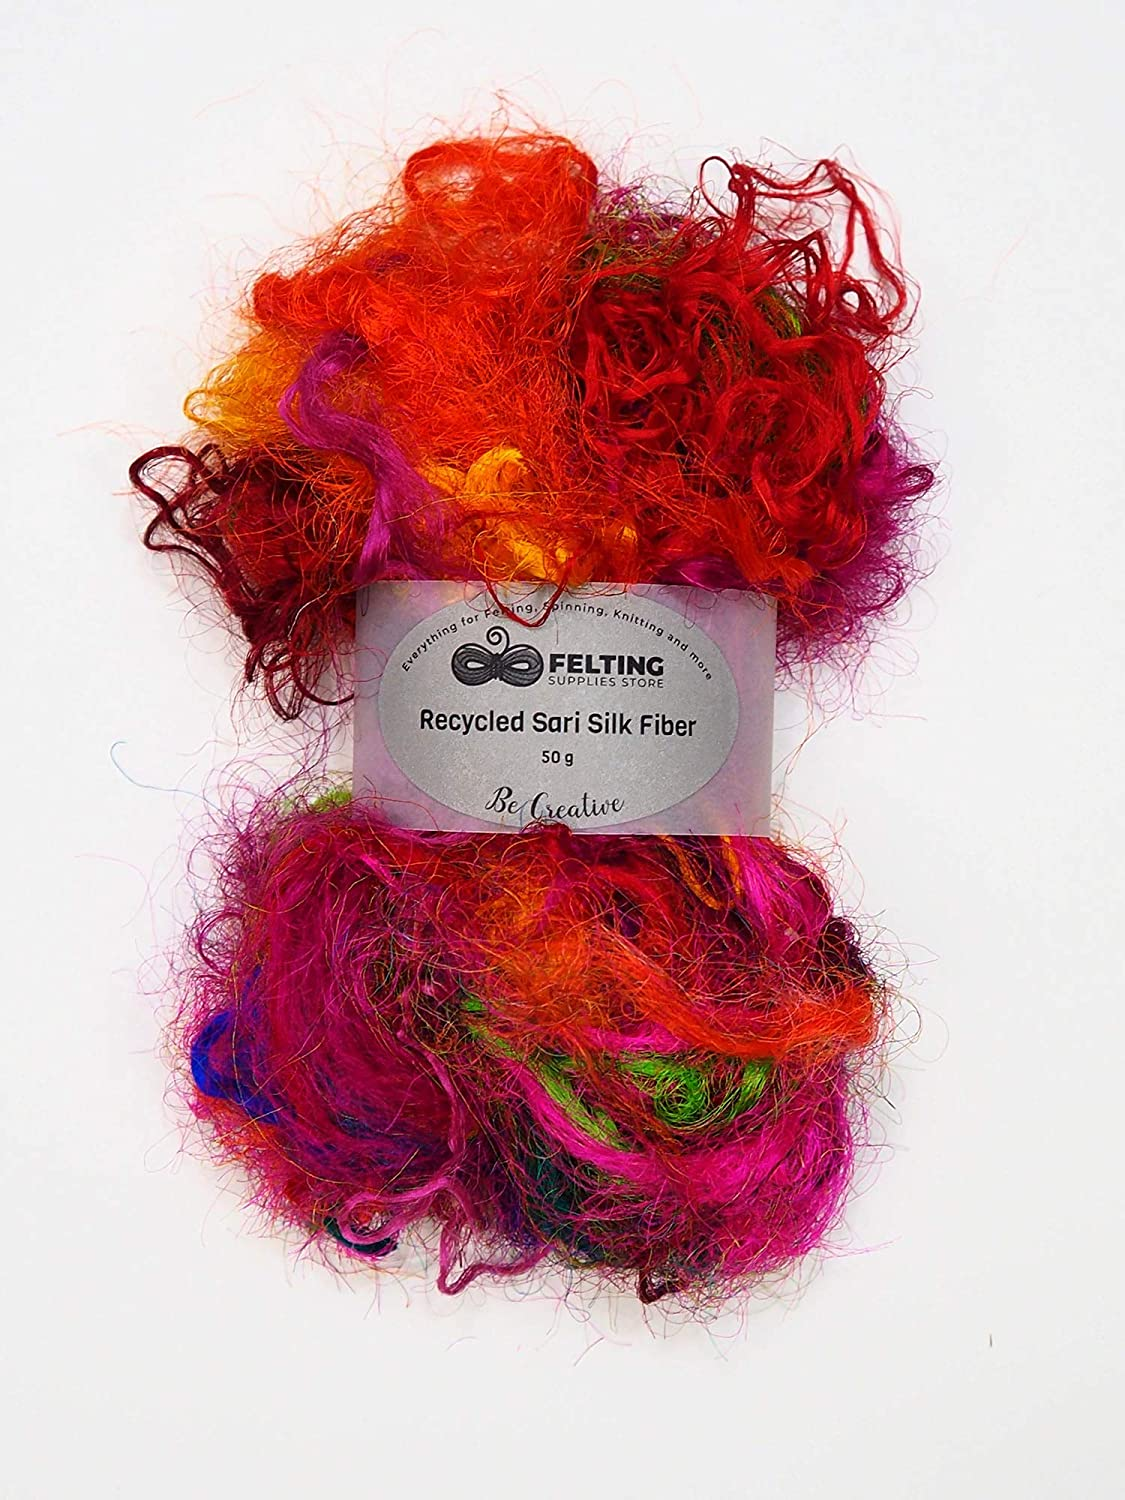 Spinning Recycled Sari Silk Fiber Mix Assorted Colors for Wet Felting Nuno Felting Crafts Paper Making Textile Projects